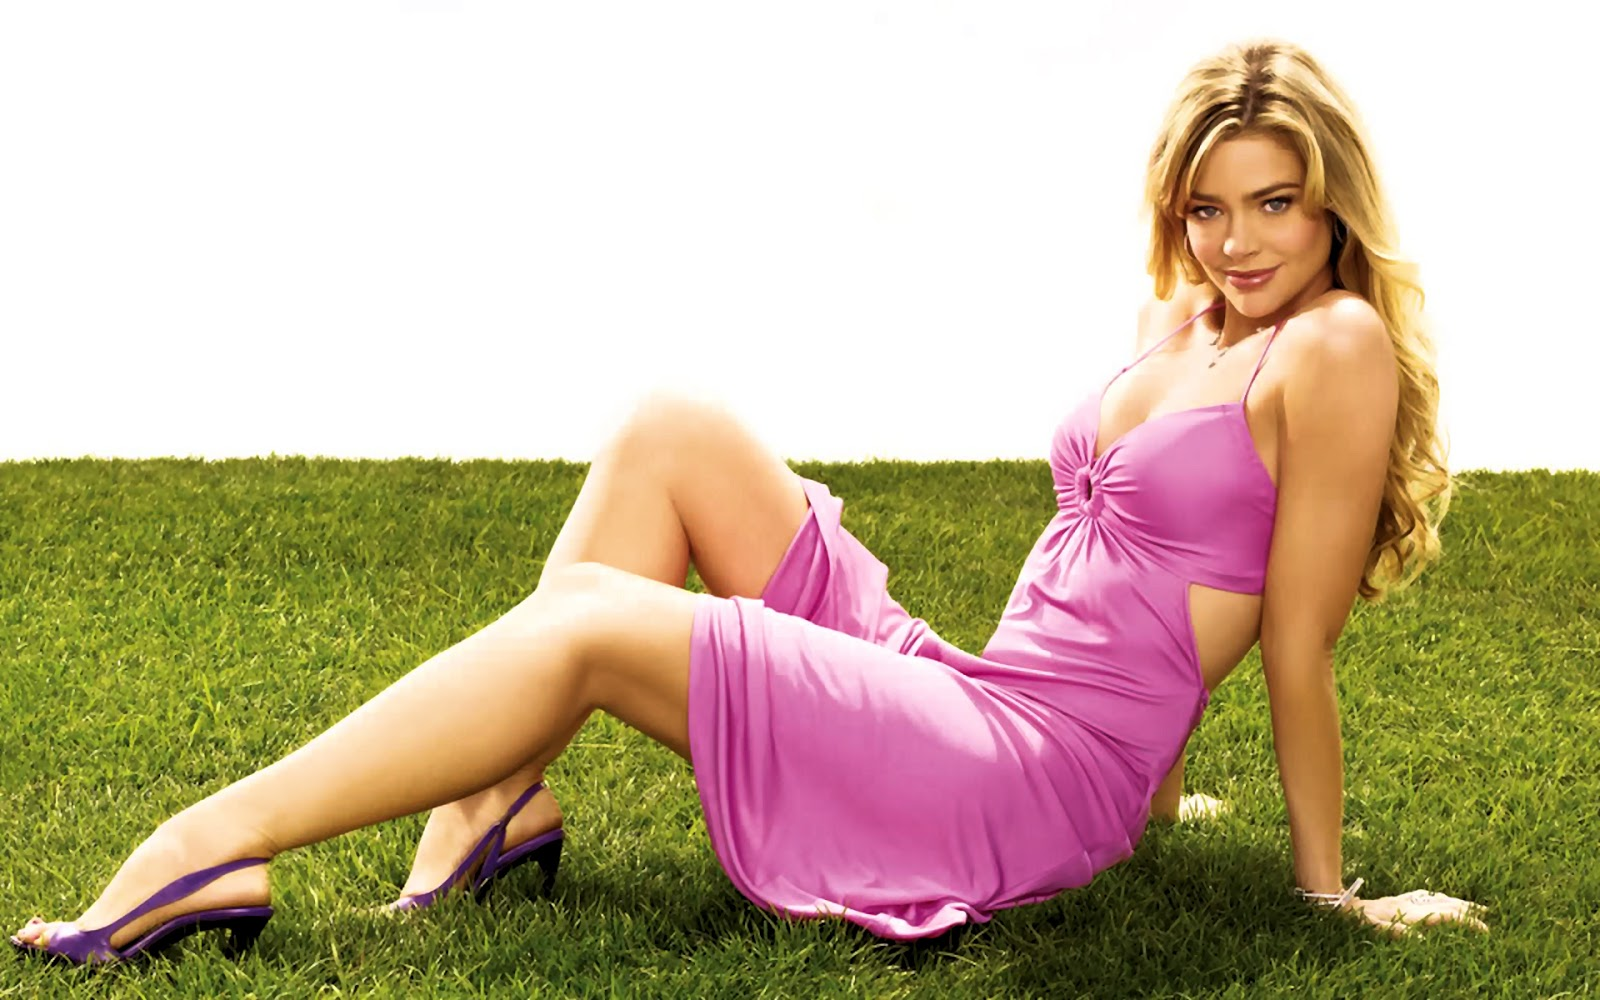 denise-richards-hot-photos